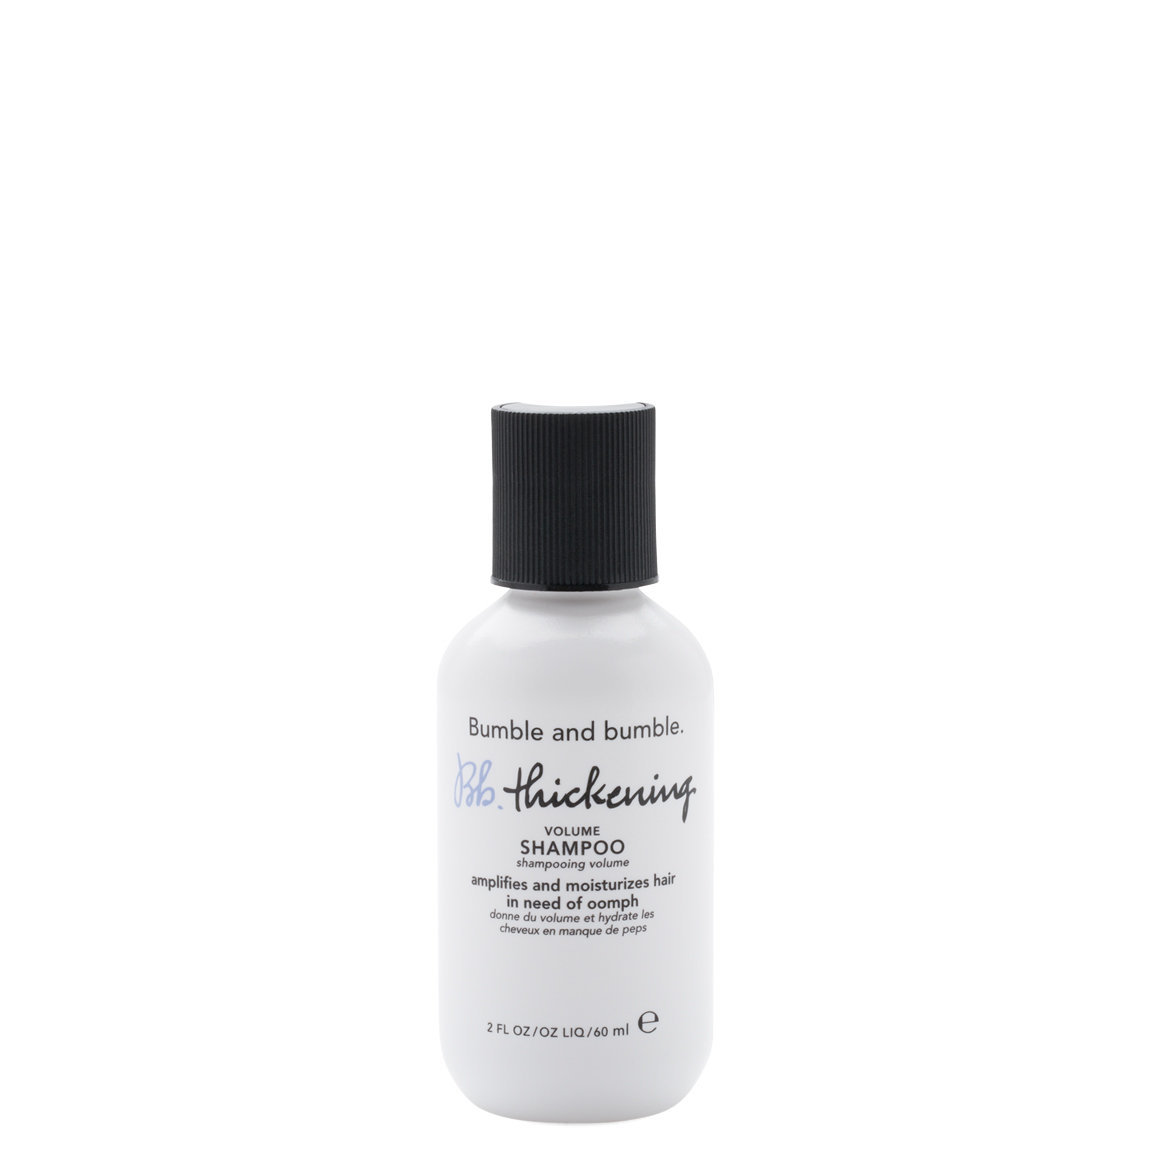 Bumble and bumble. Bb.Thickening Volume Shampoo 2 oz product smear.